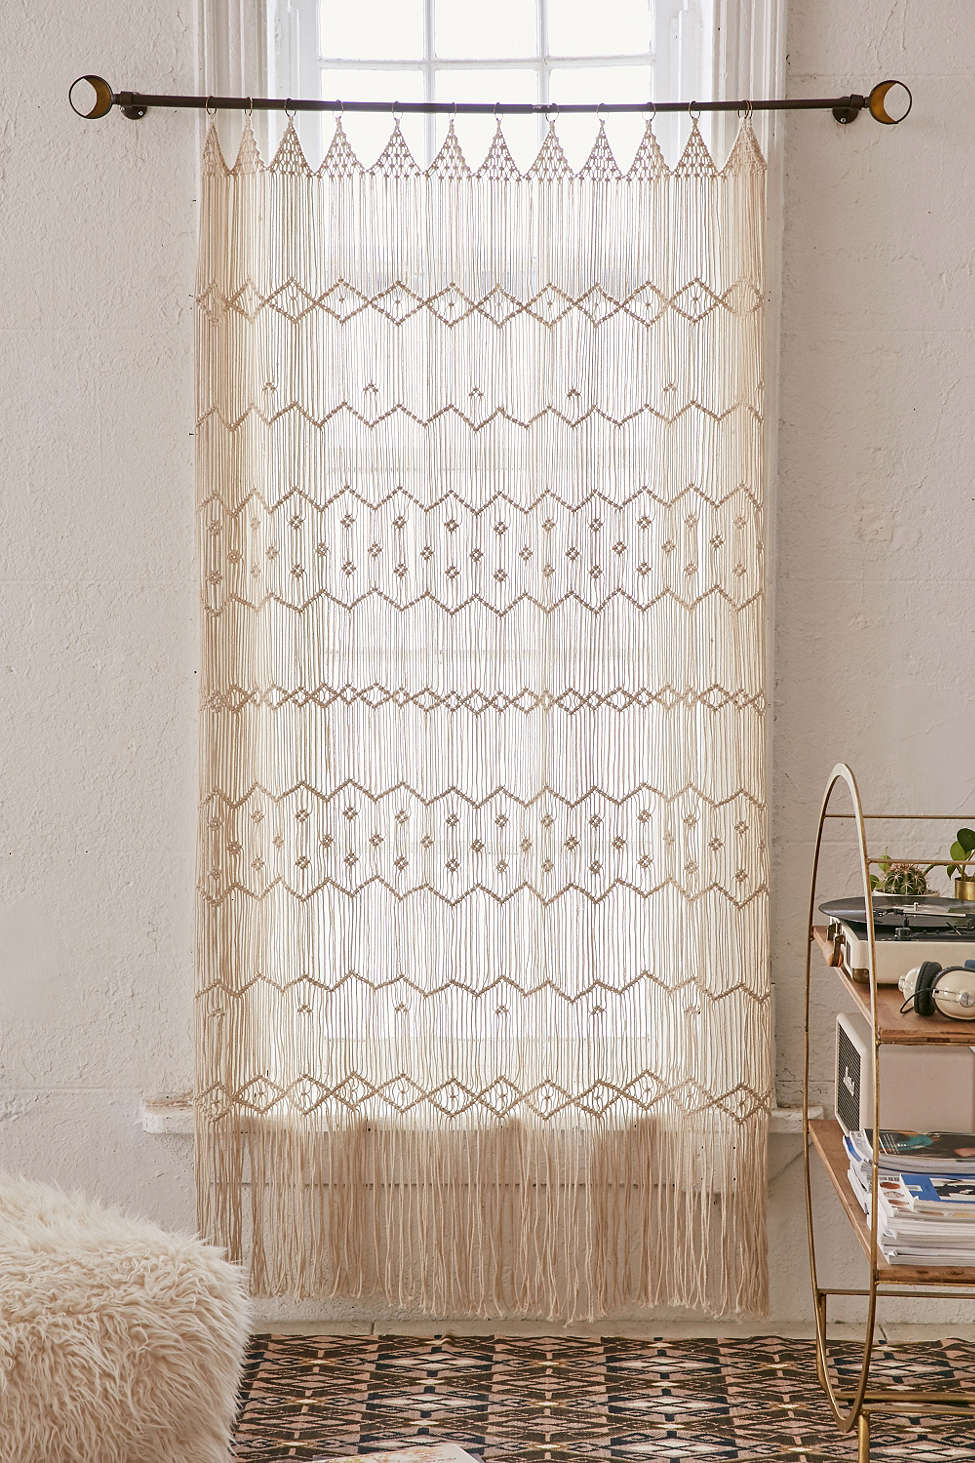 macrame wall hanging outfitters 15 best bohemian decor pieces in 2018 bohemian furniture 2158